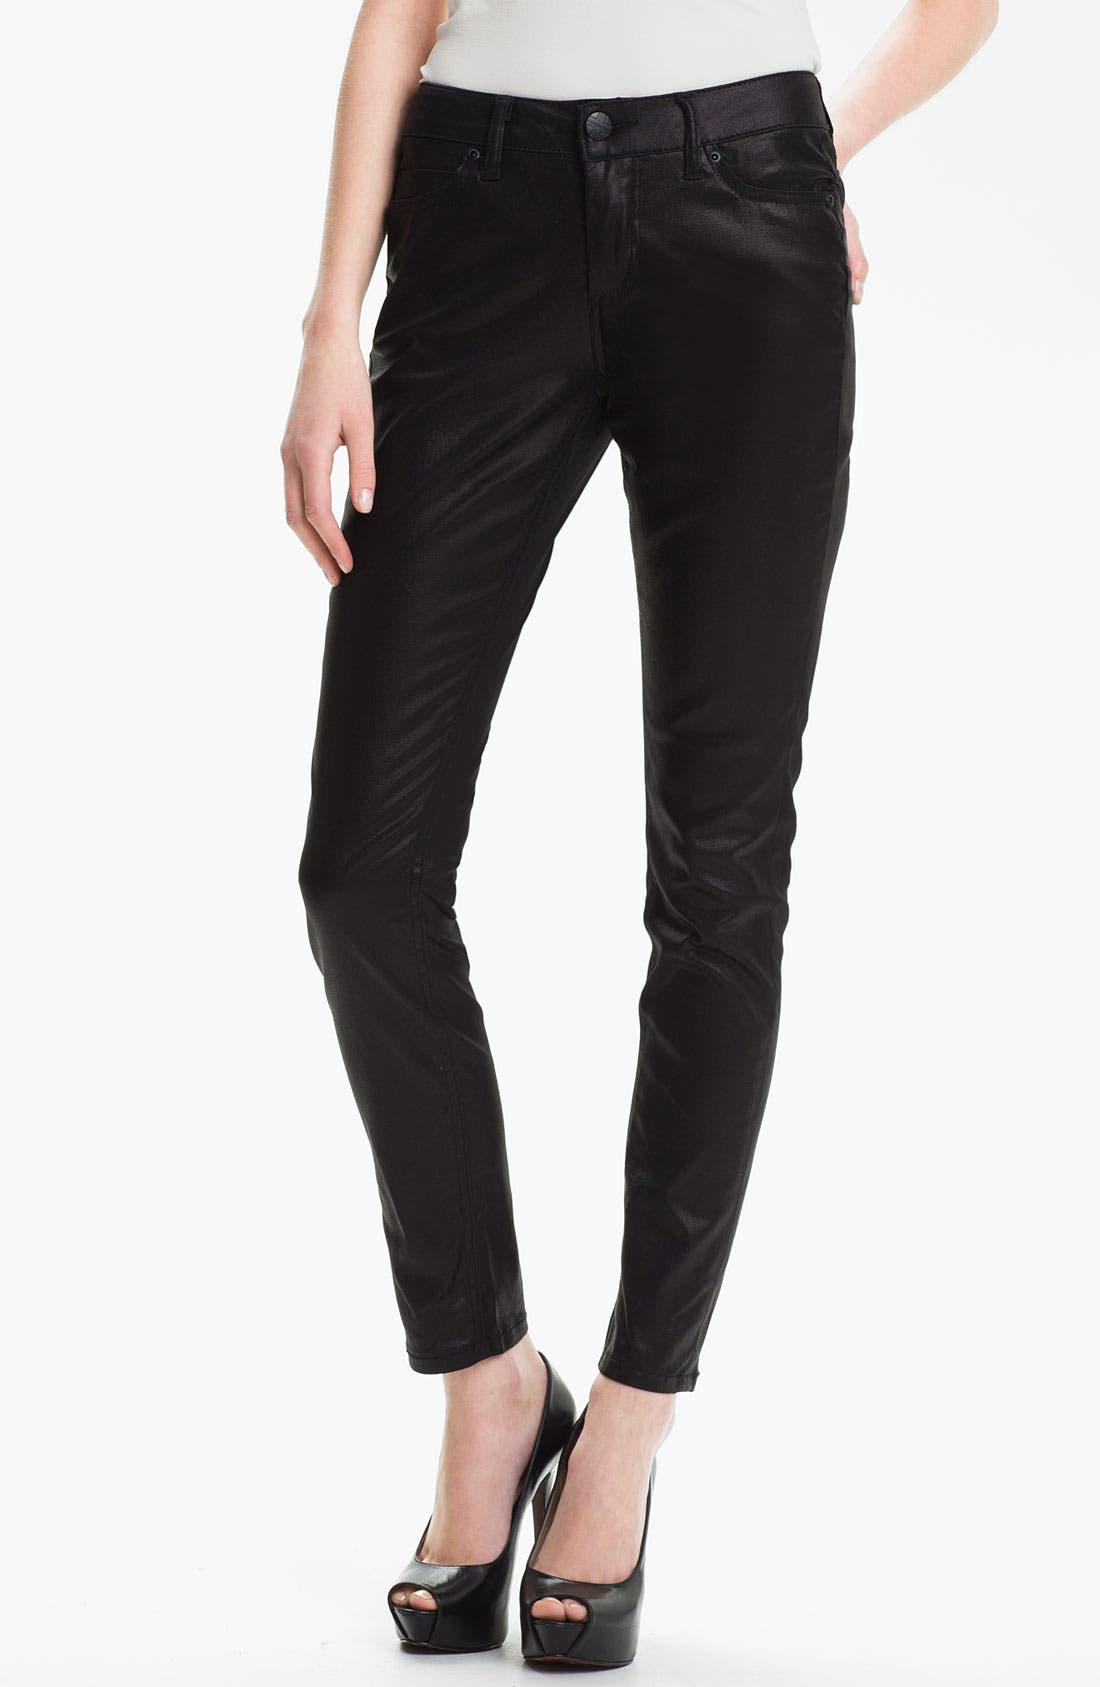 Main Image - Liverpool Jeans Company 'Abby' Coated Skinny Jeans (Petite) (Online Only)